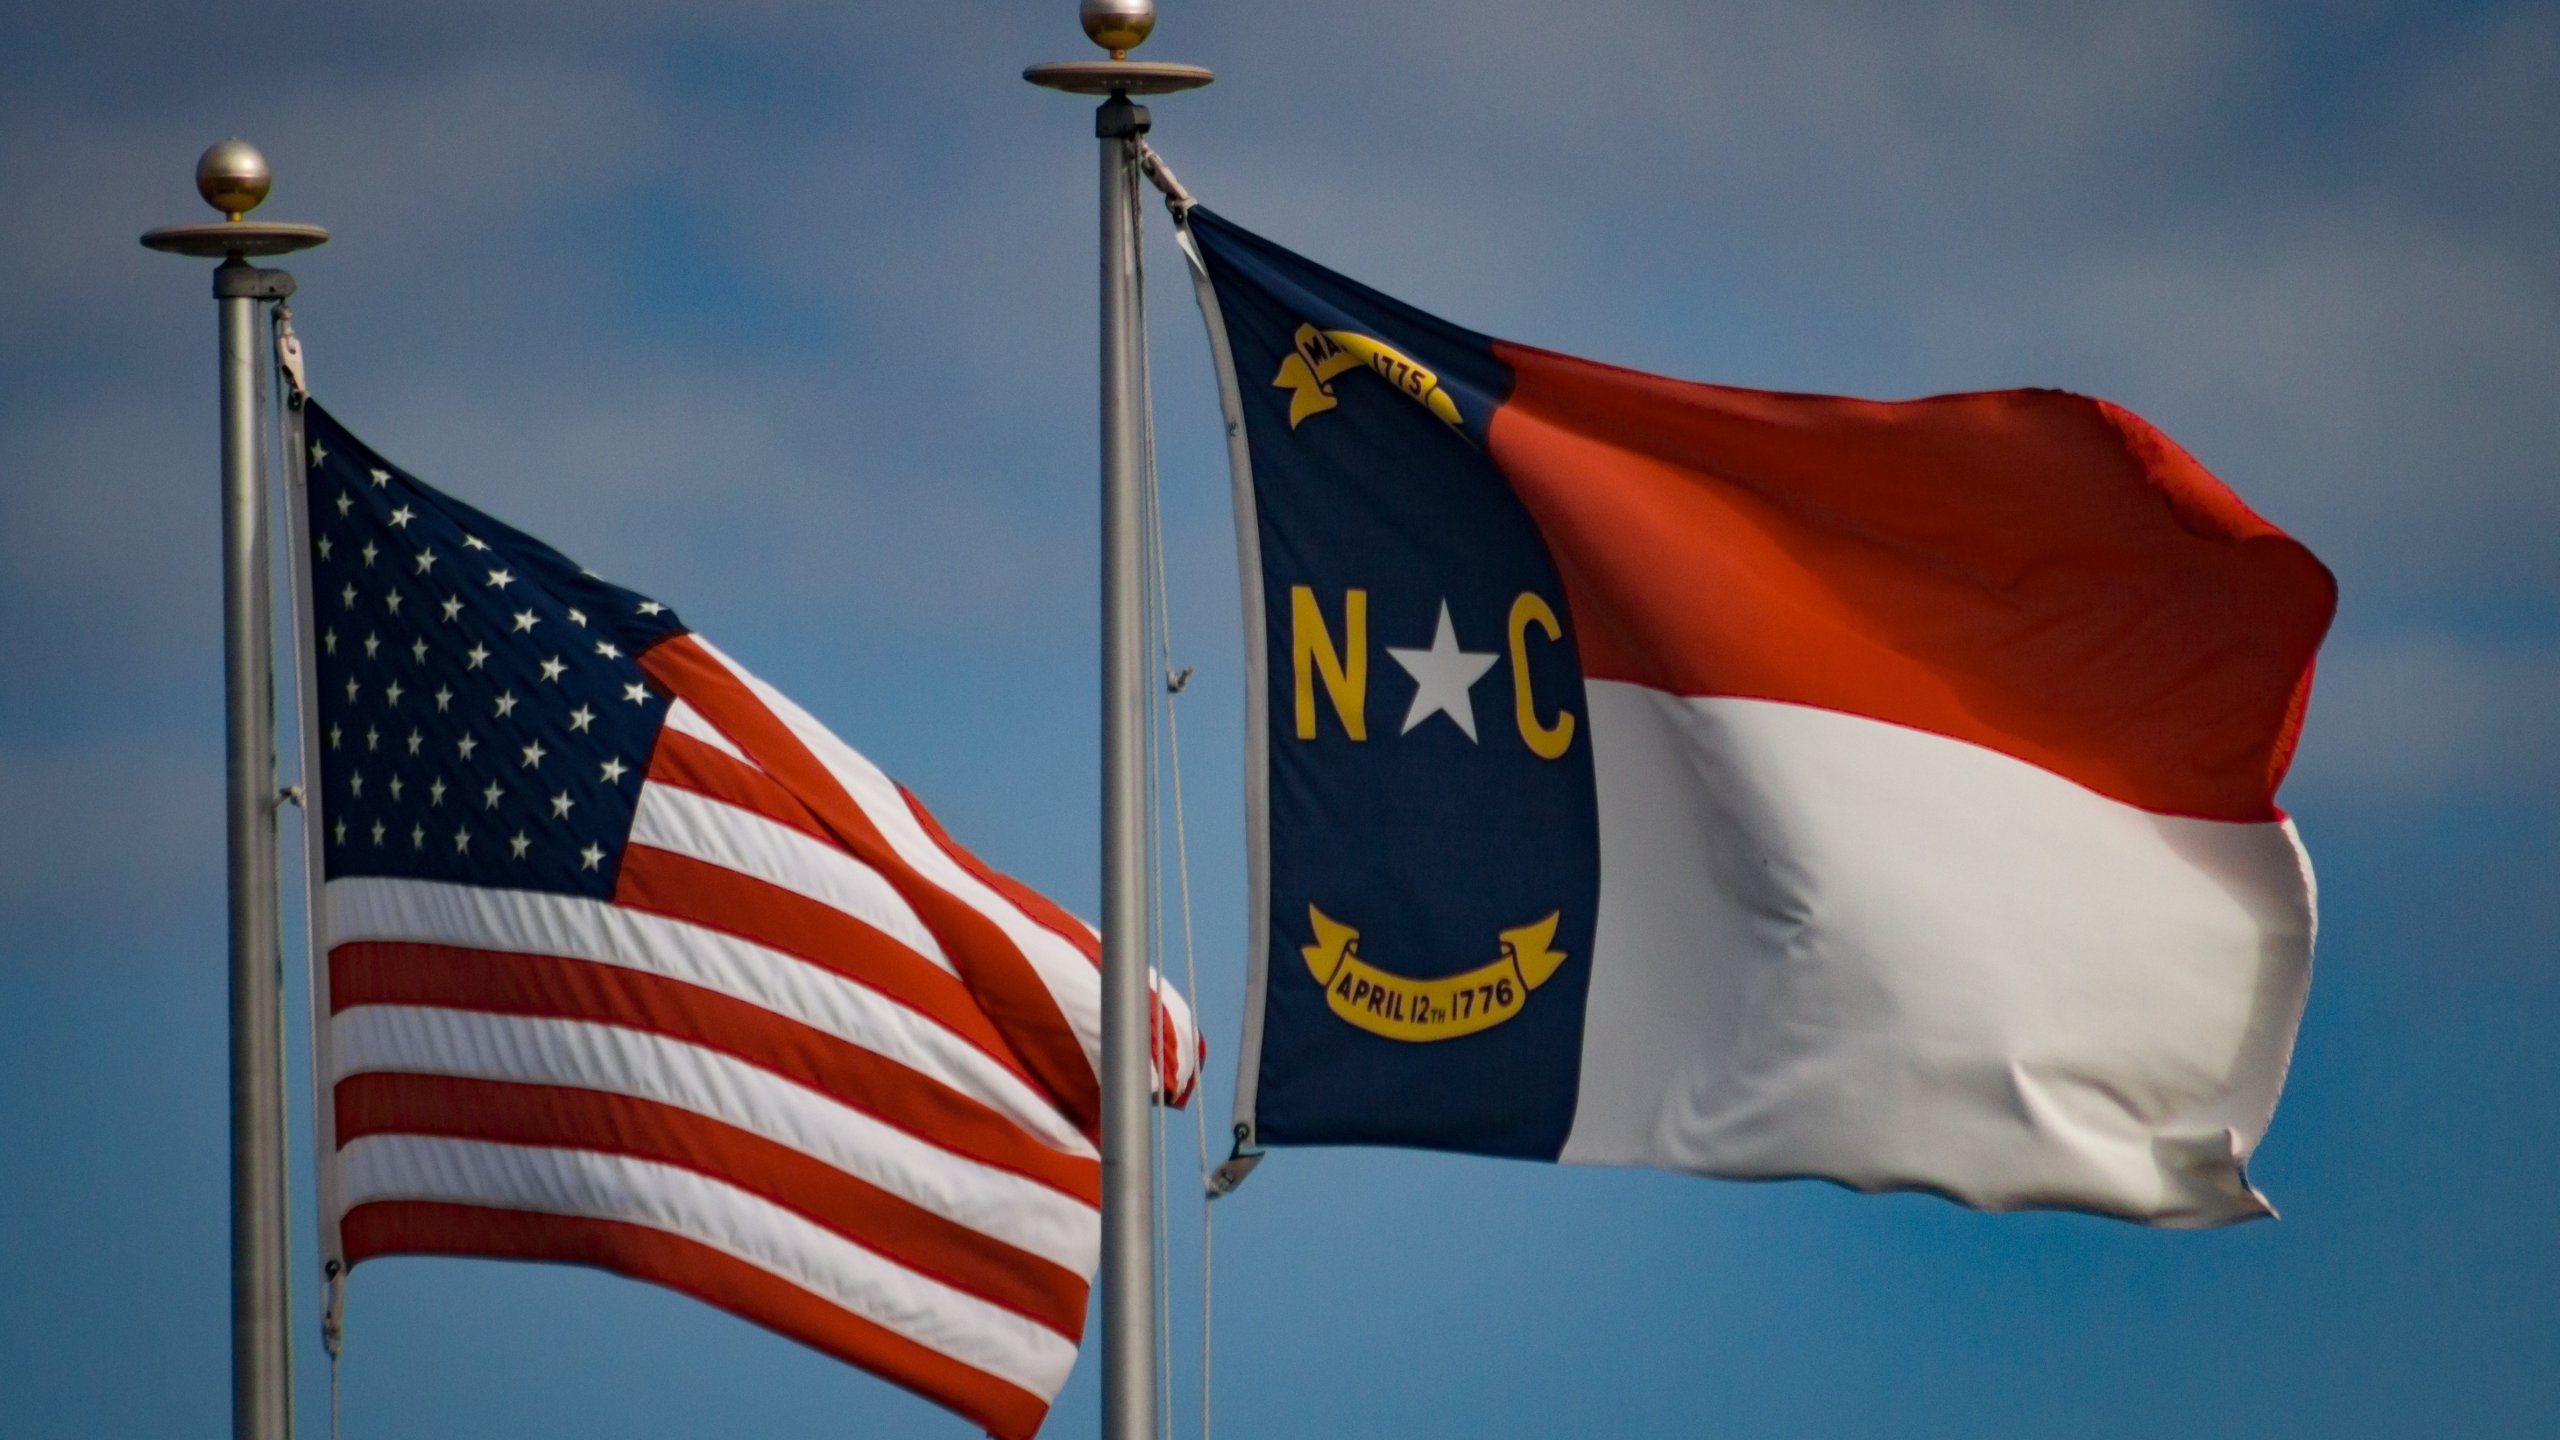 North Carolina and American flags (Darwin Brandis/Getty Images)